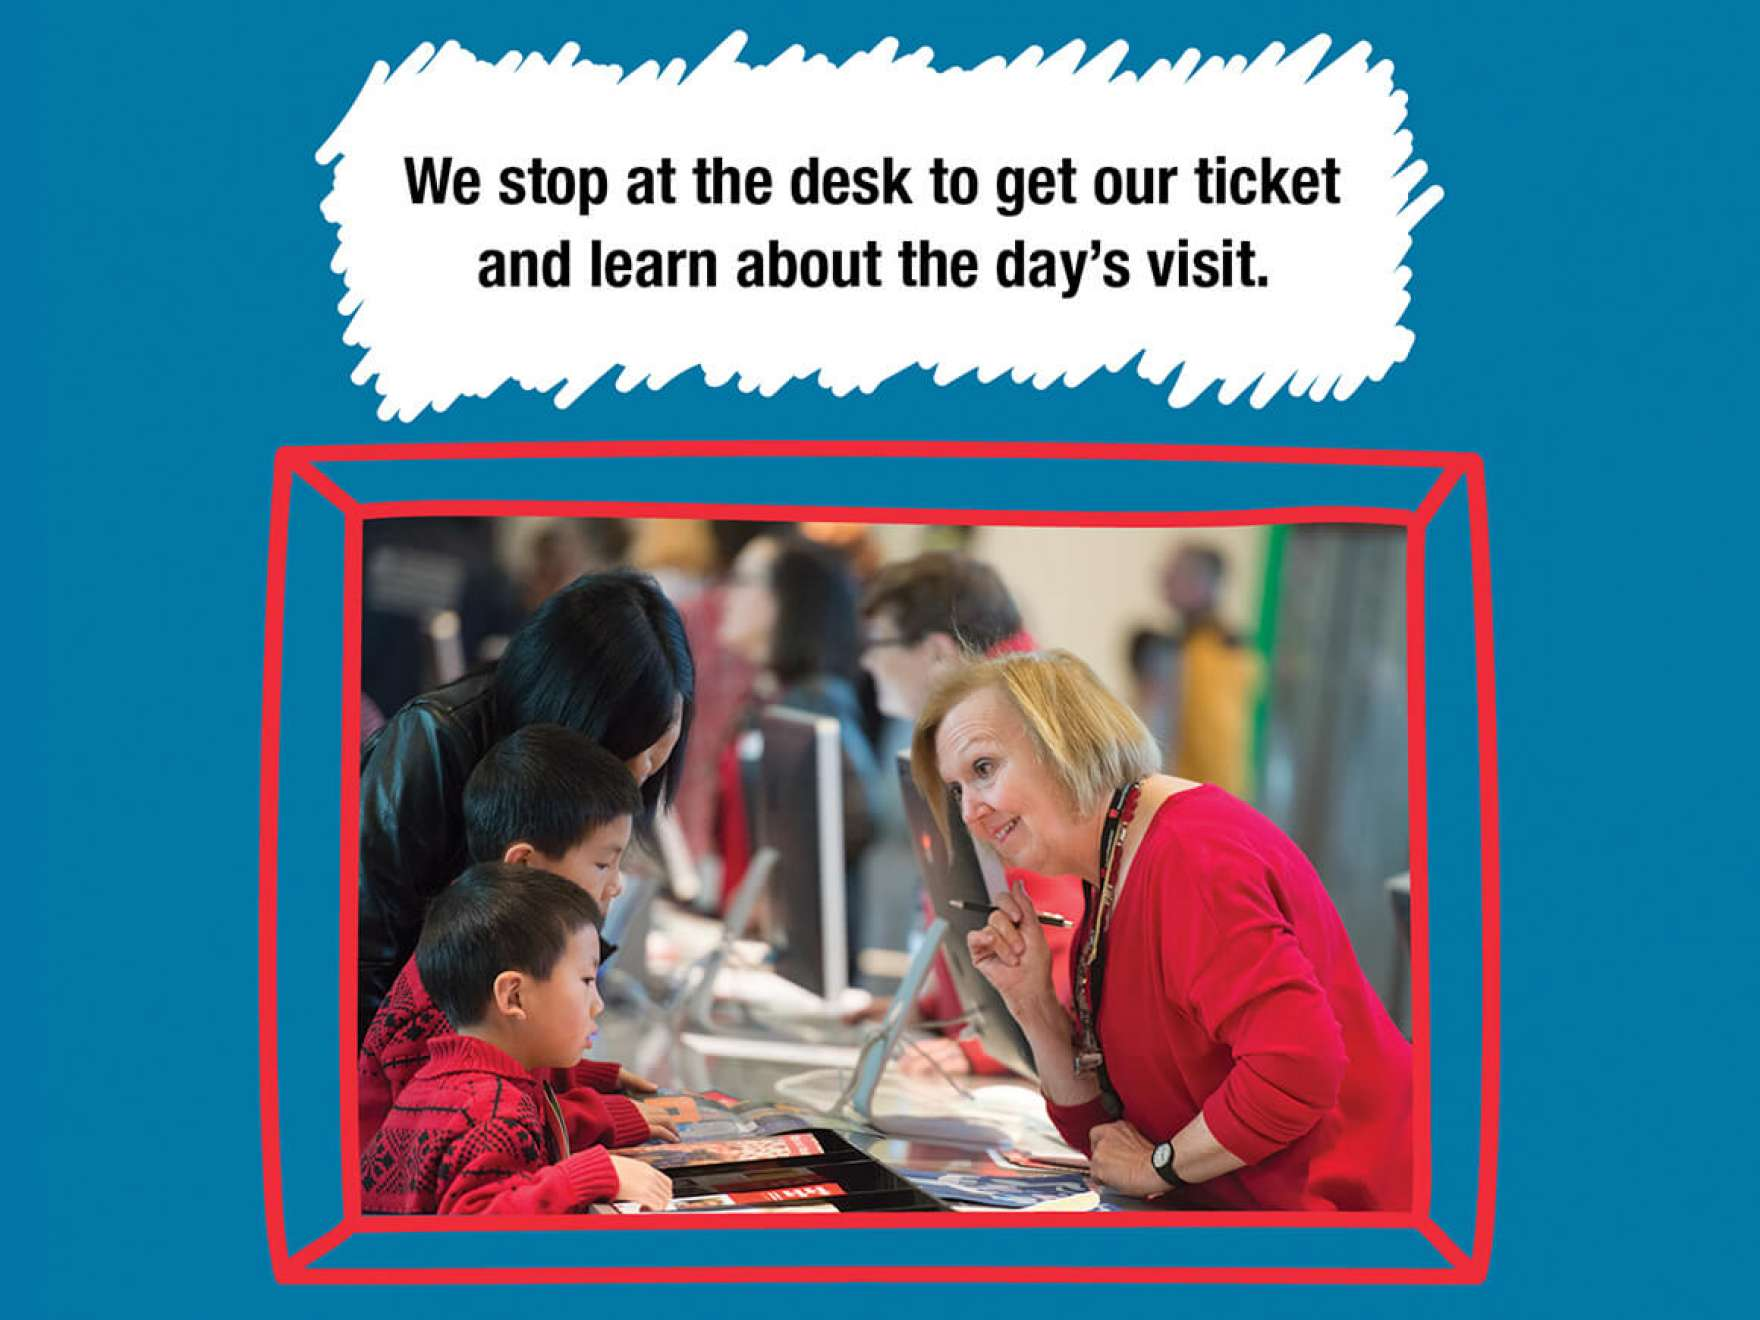 We stop at the desk to get our ticket and learn about the day's visit.